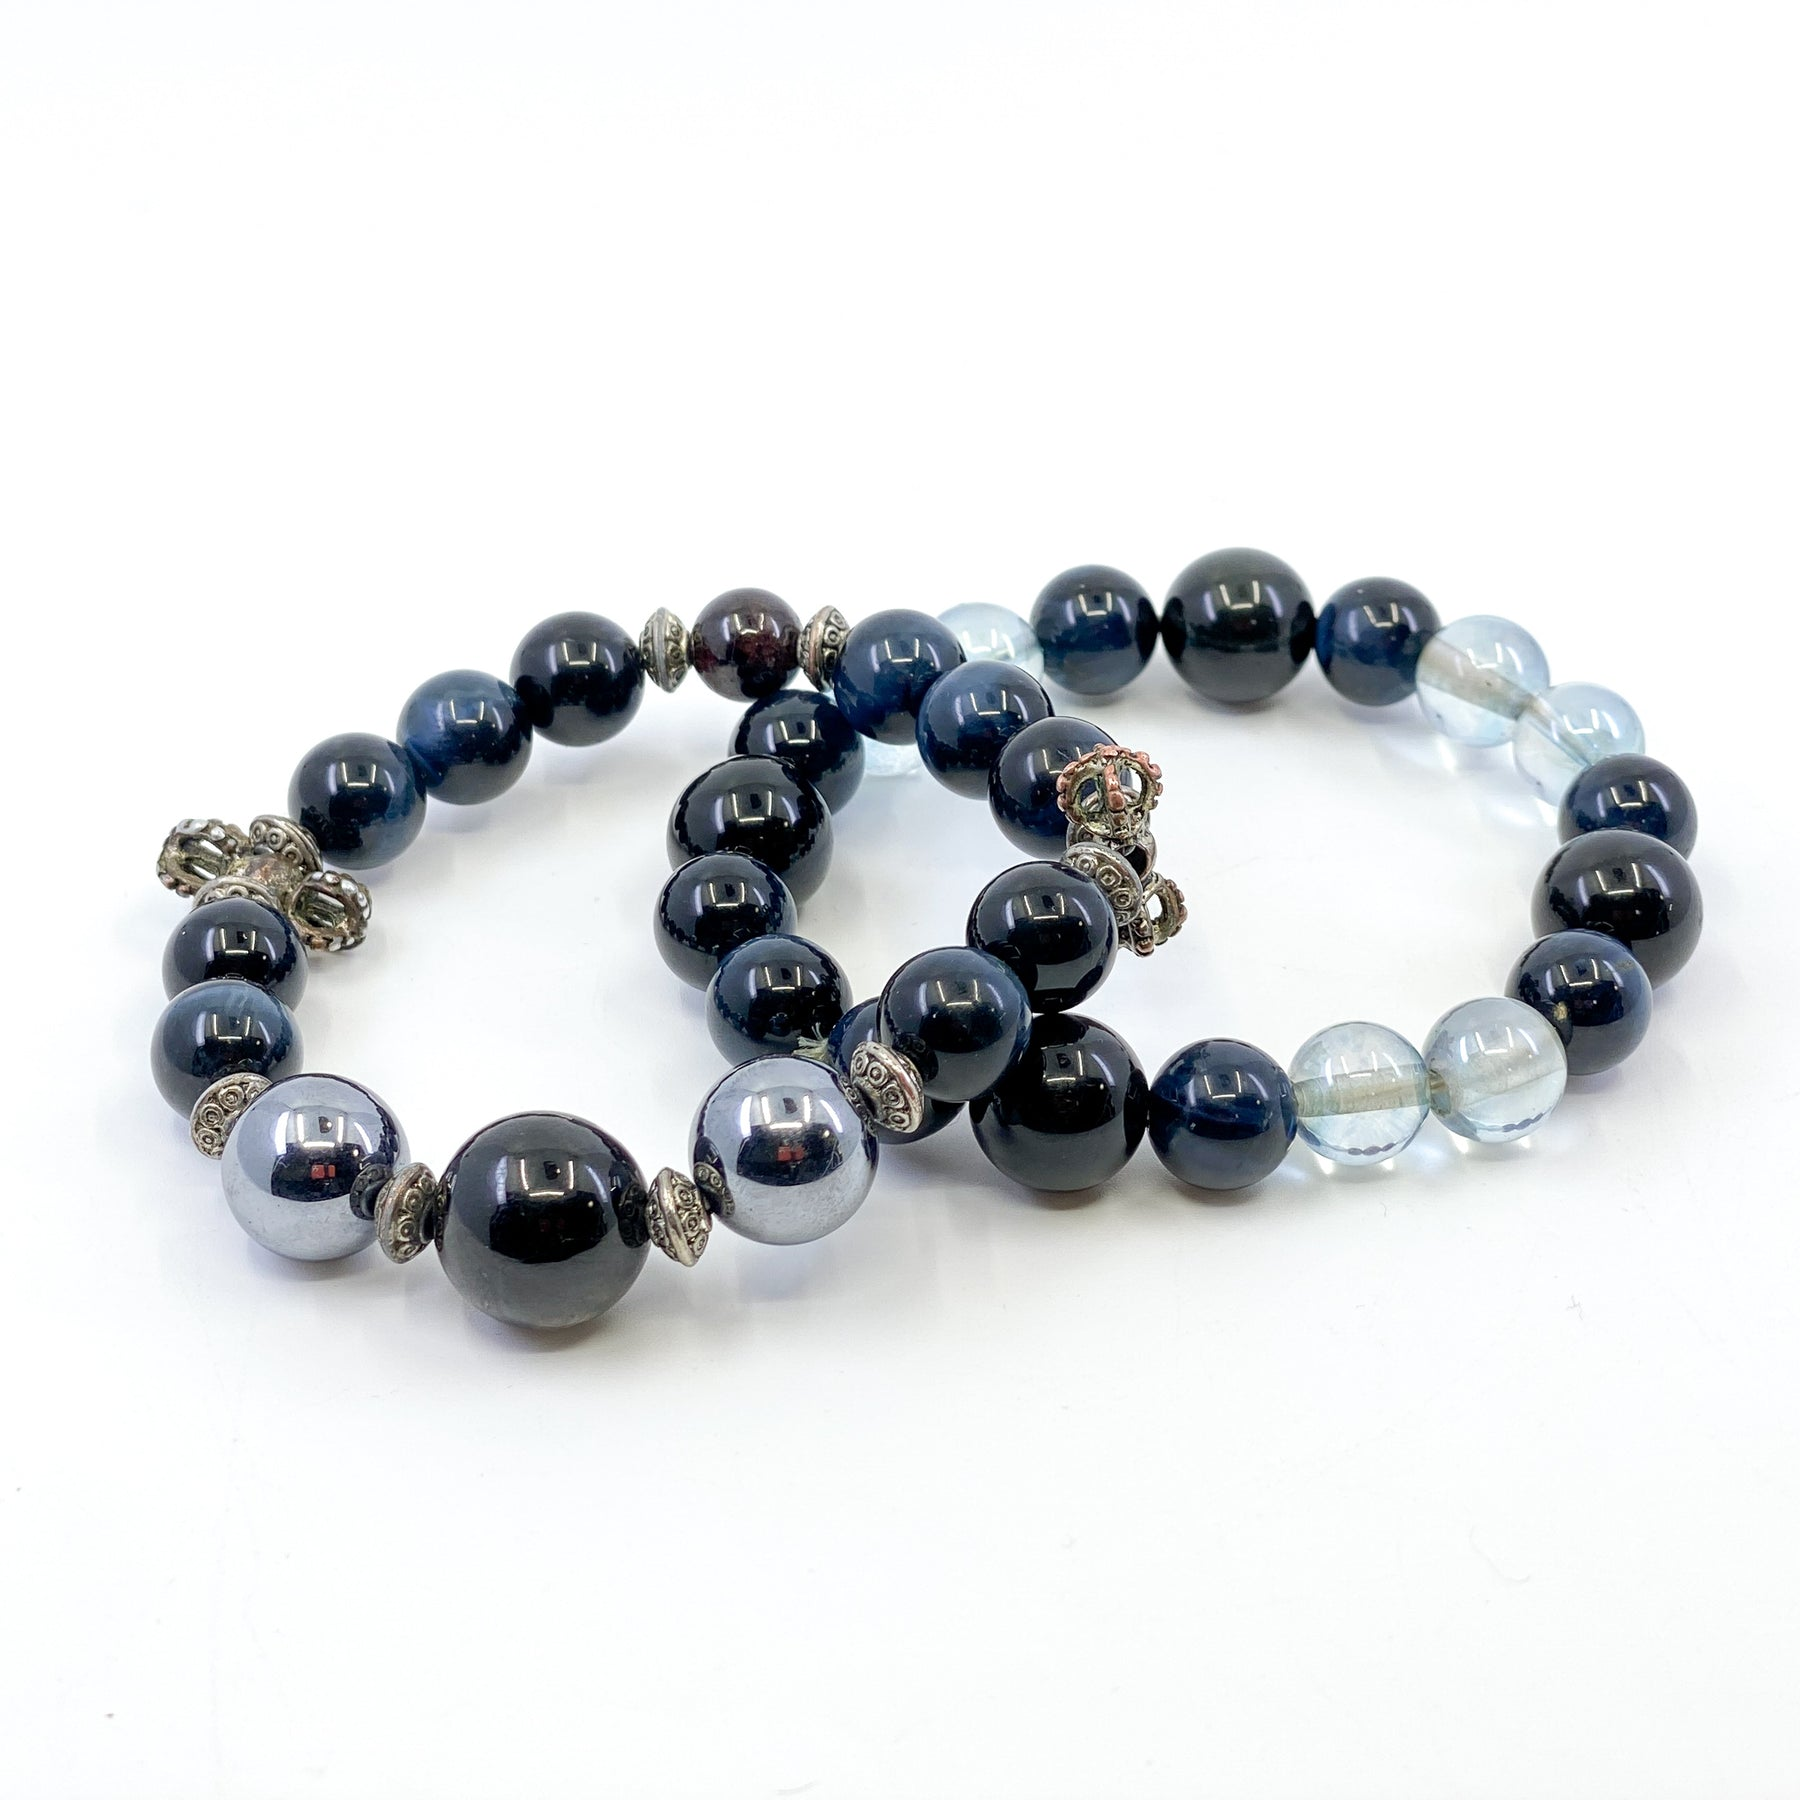 Black Beads at The Bead Gallery!